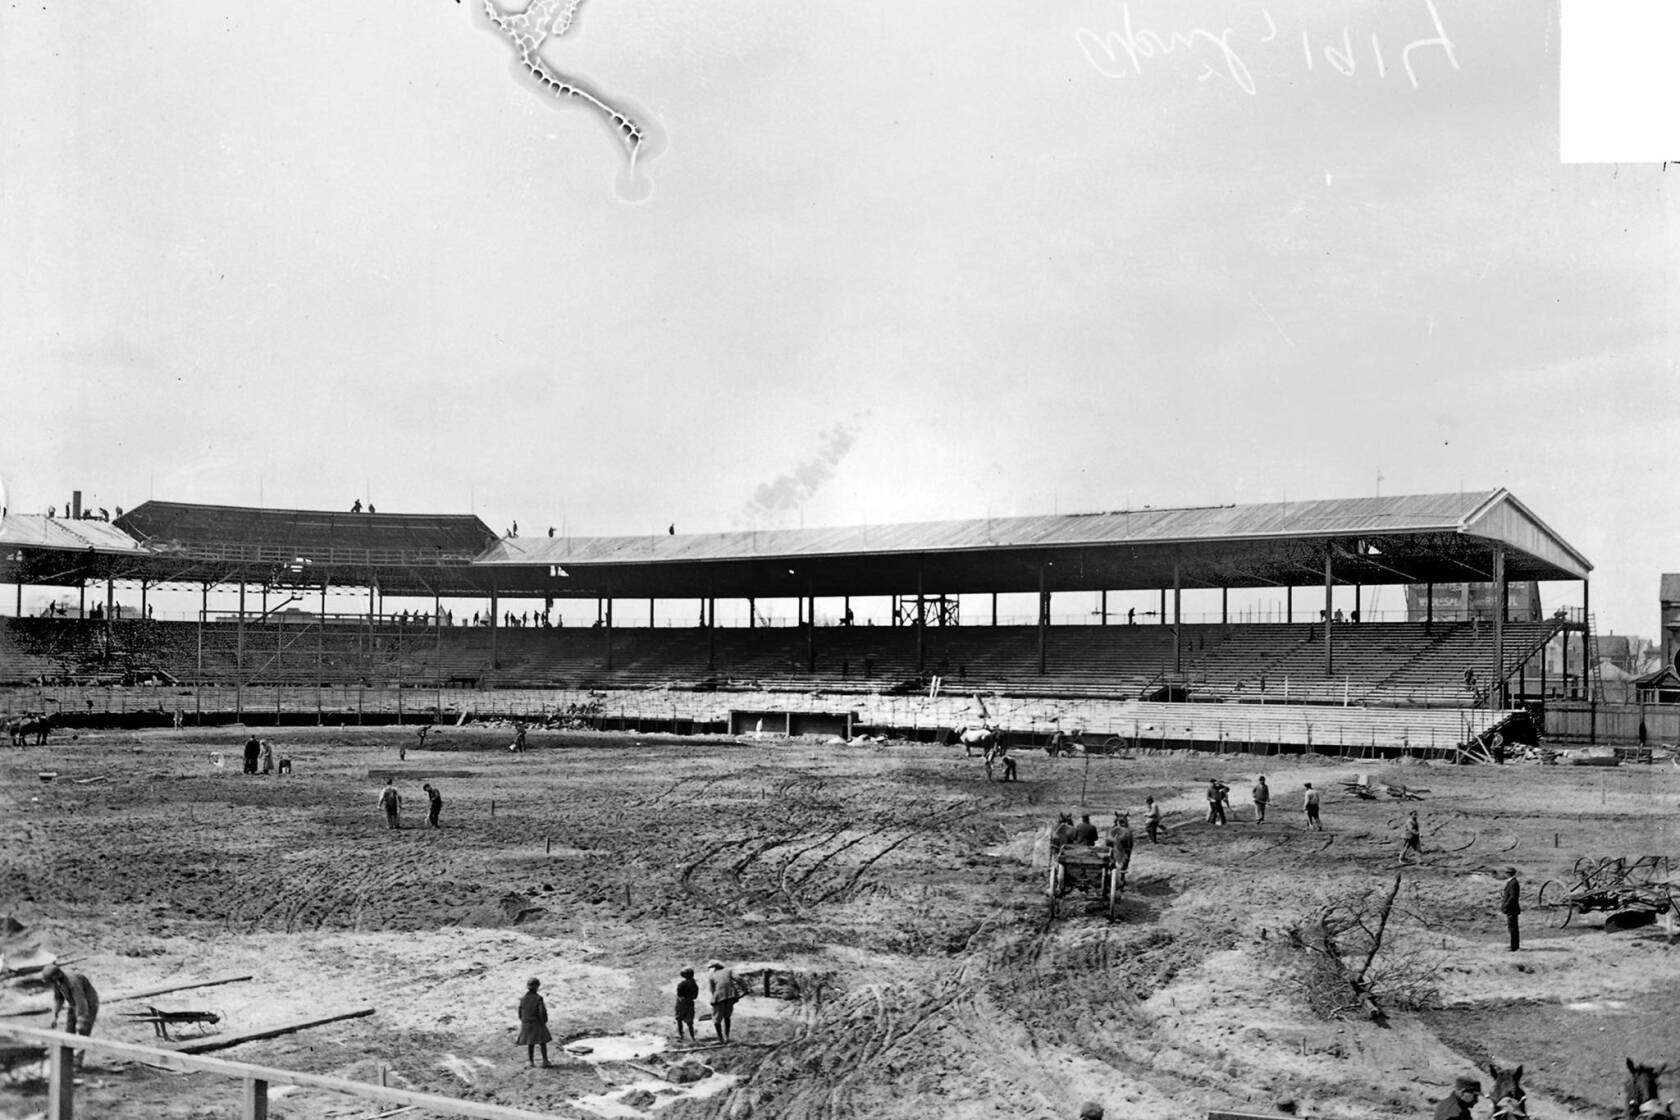 An evolution to 'Beautiful Wrigley Field' - Los Angeles Times